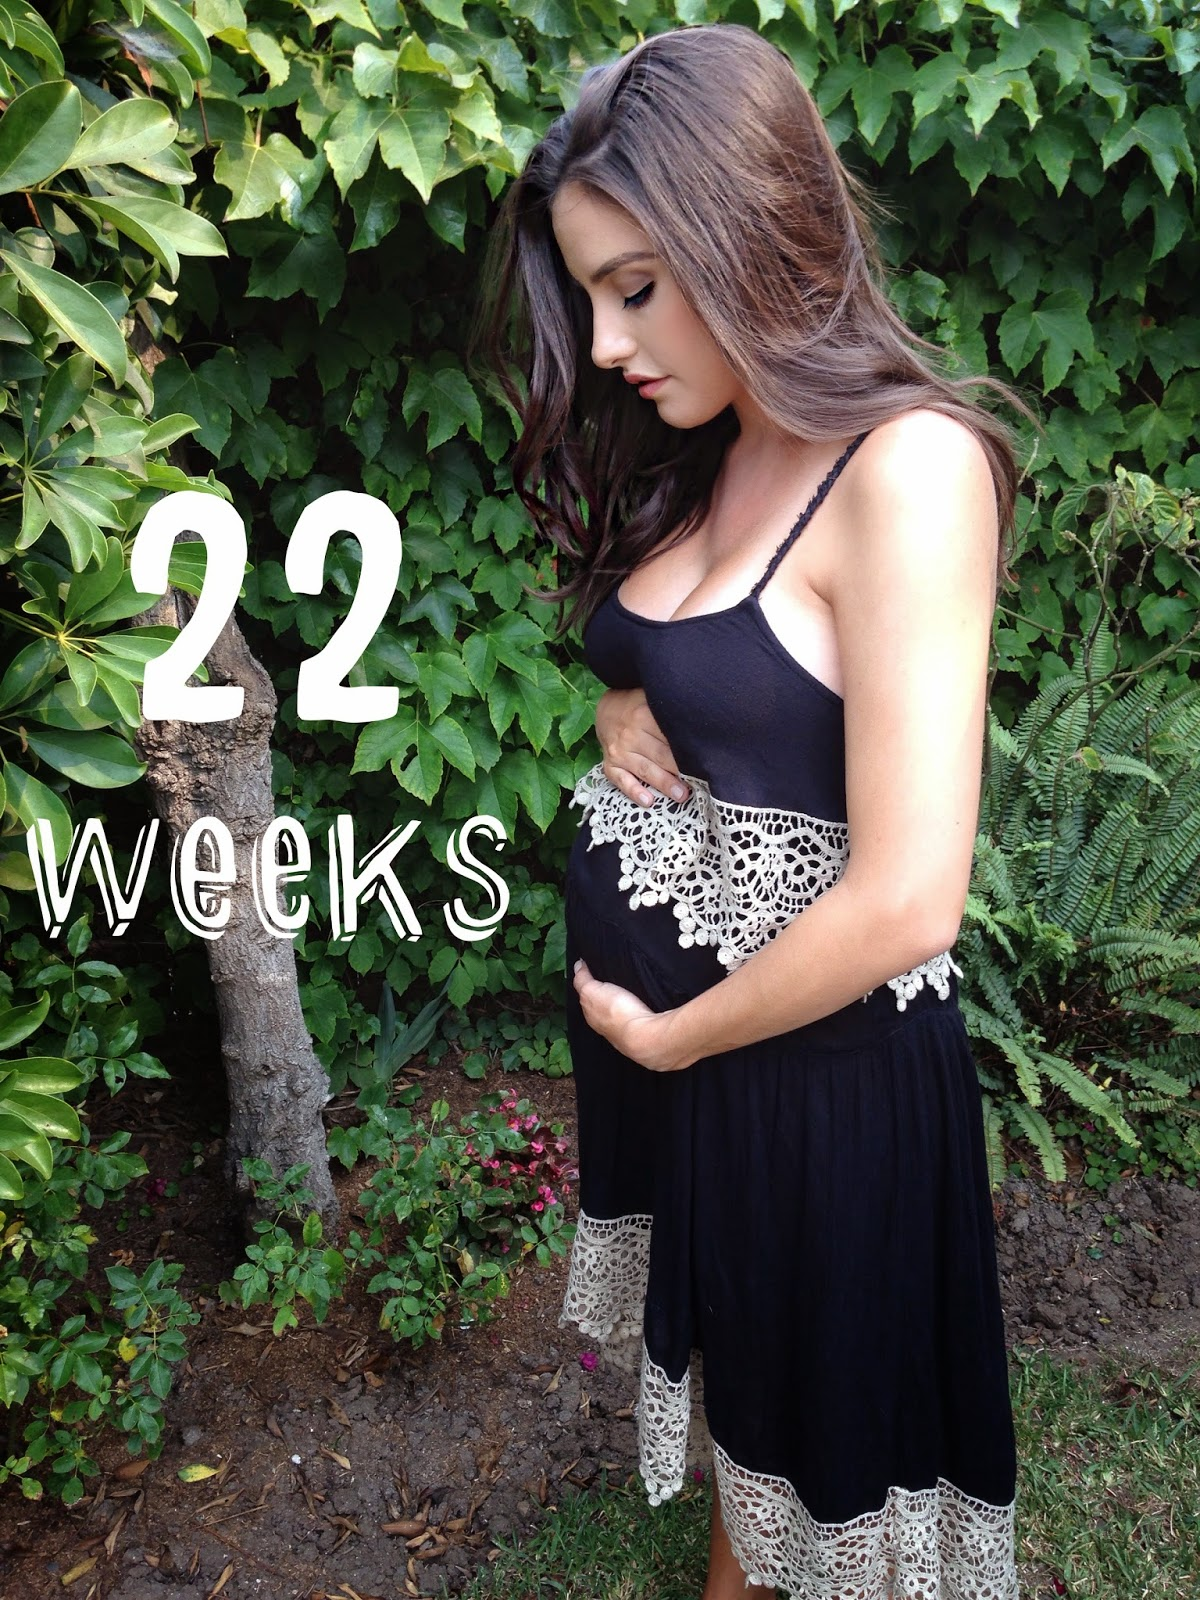 Zack&Sydney: 22 Weeks Pregnant Picture